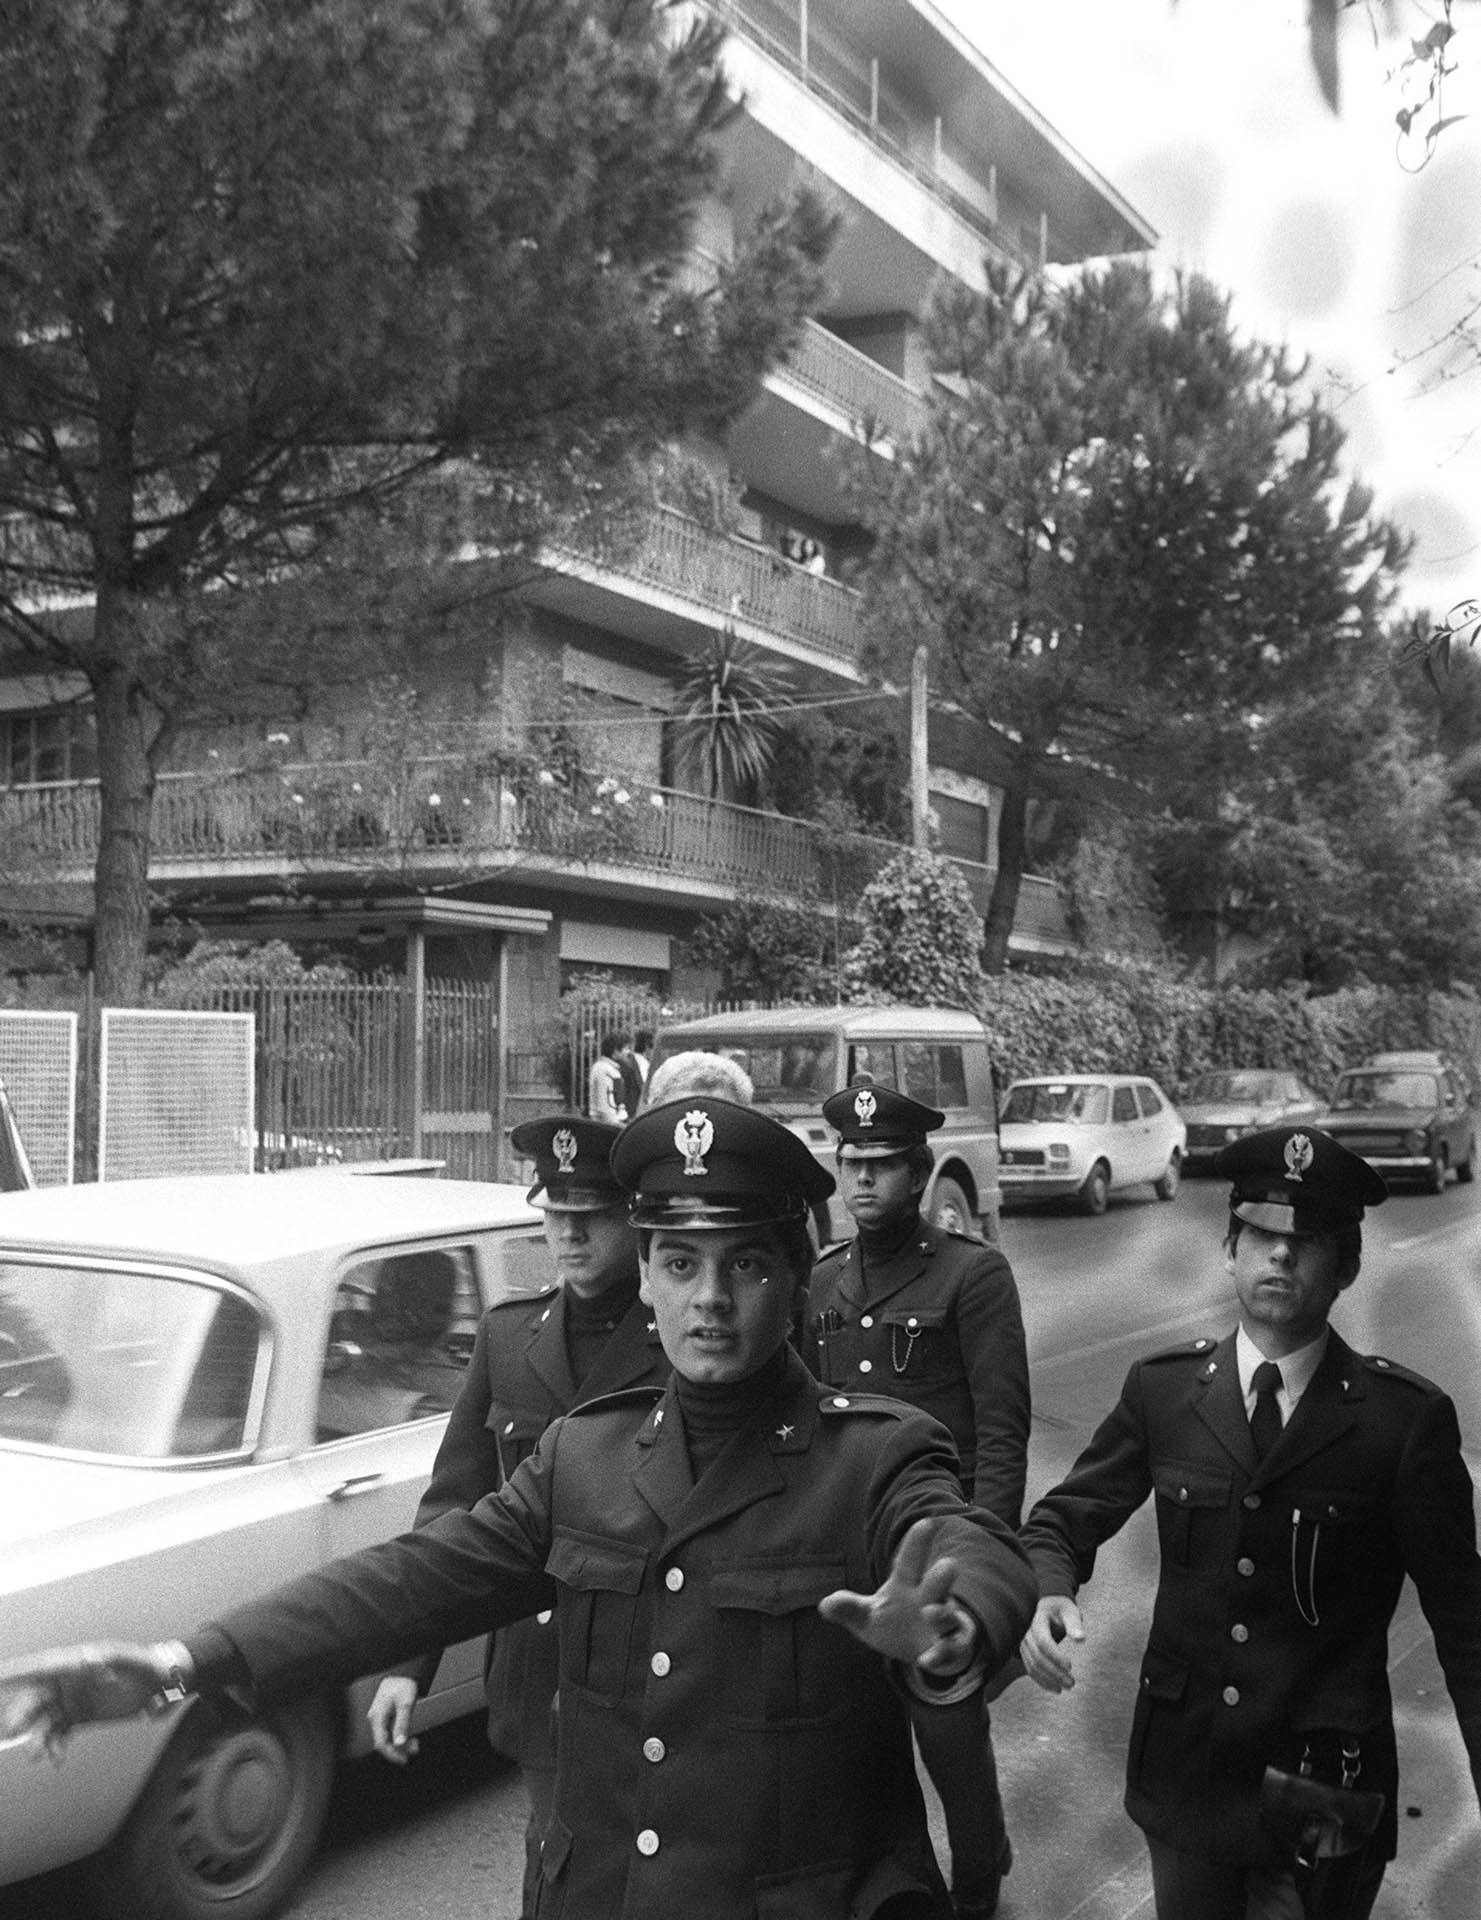 Rome, Italy - 10 May 1978 The reaction of the people after the discovery of Aldo Moro's corpse.